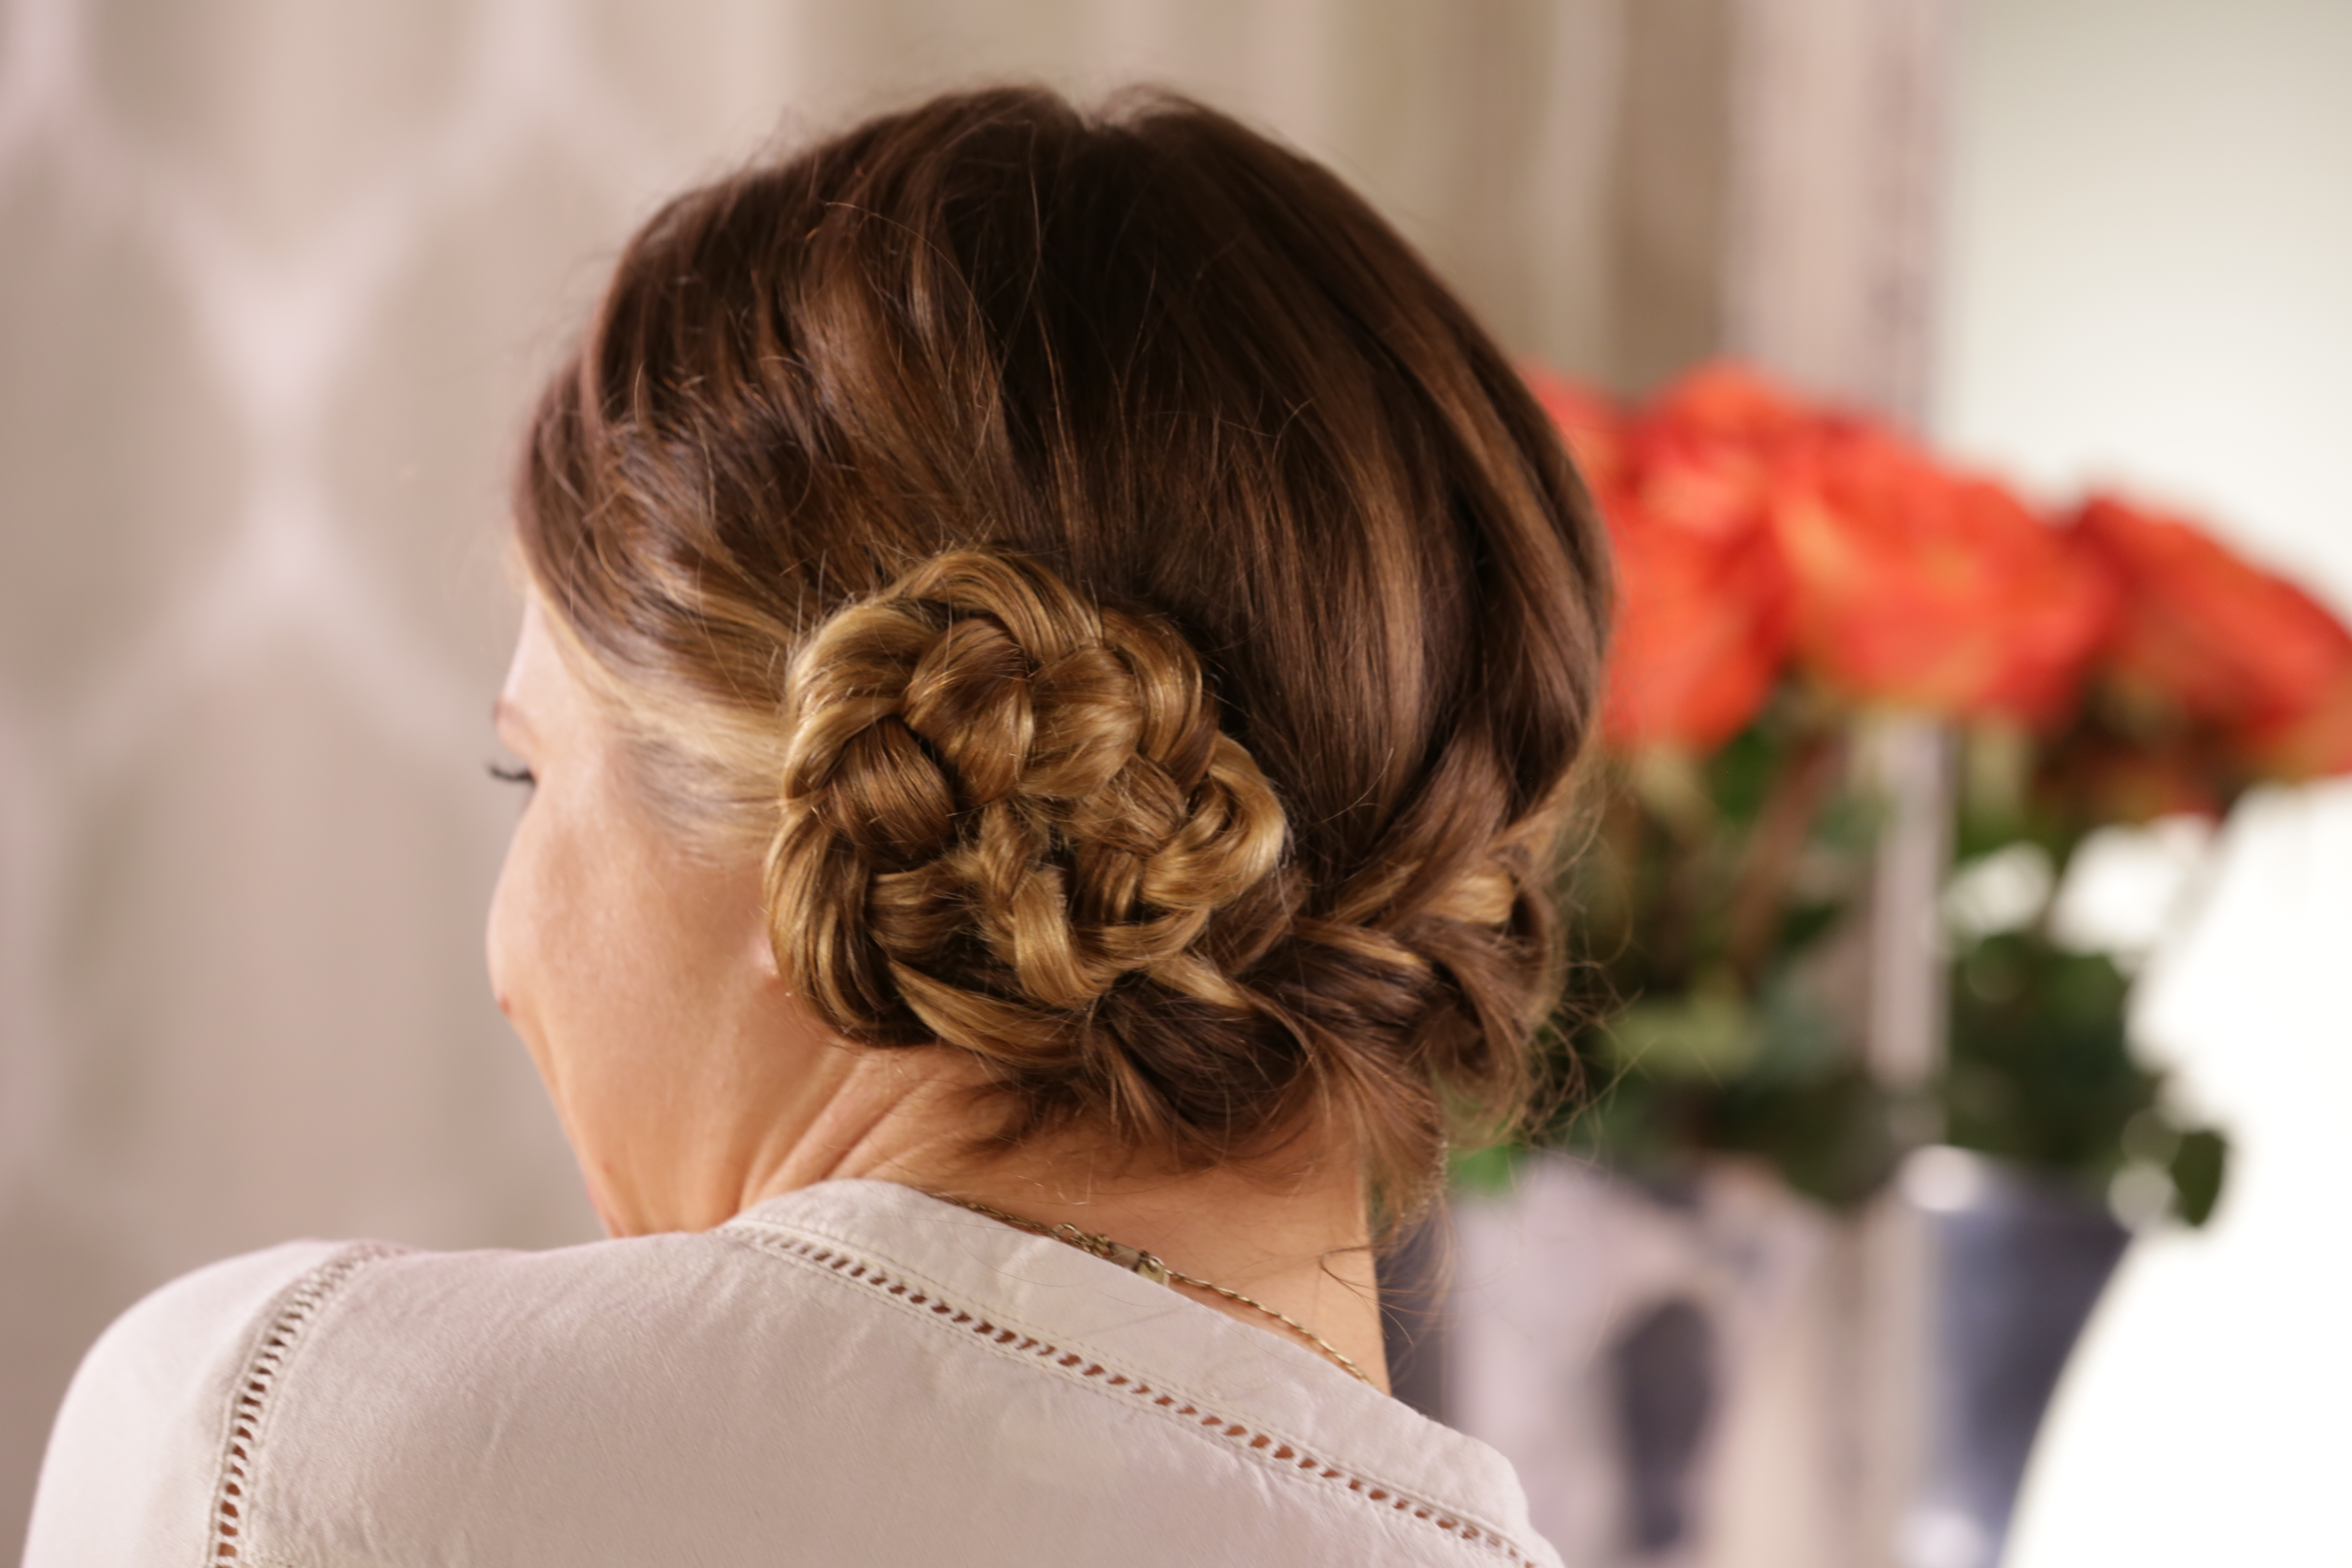 Cinnamon Roll Braided Updo How-To